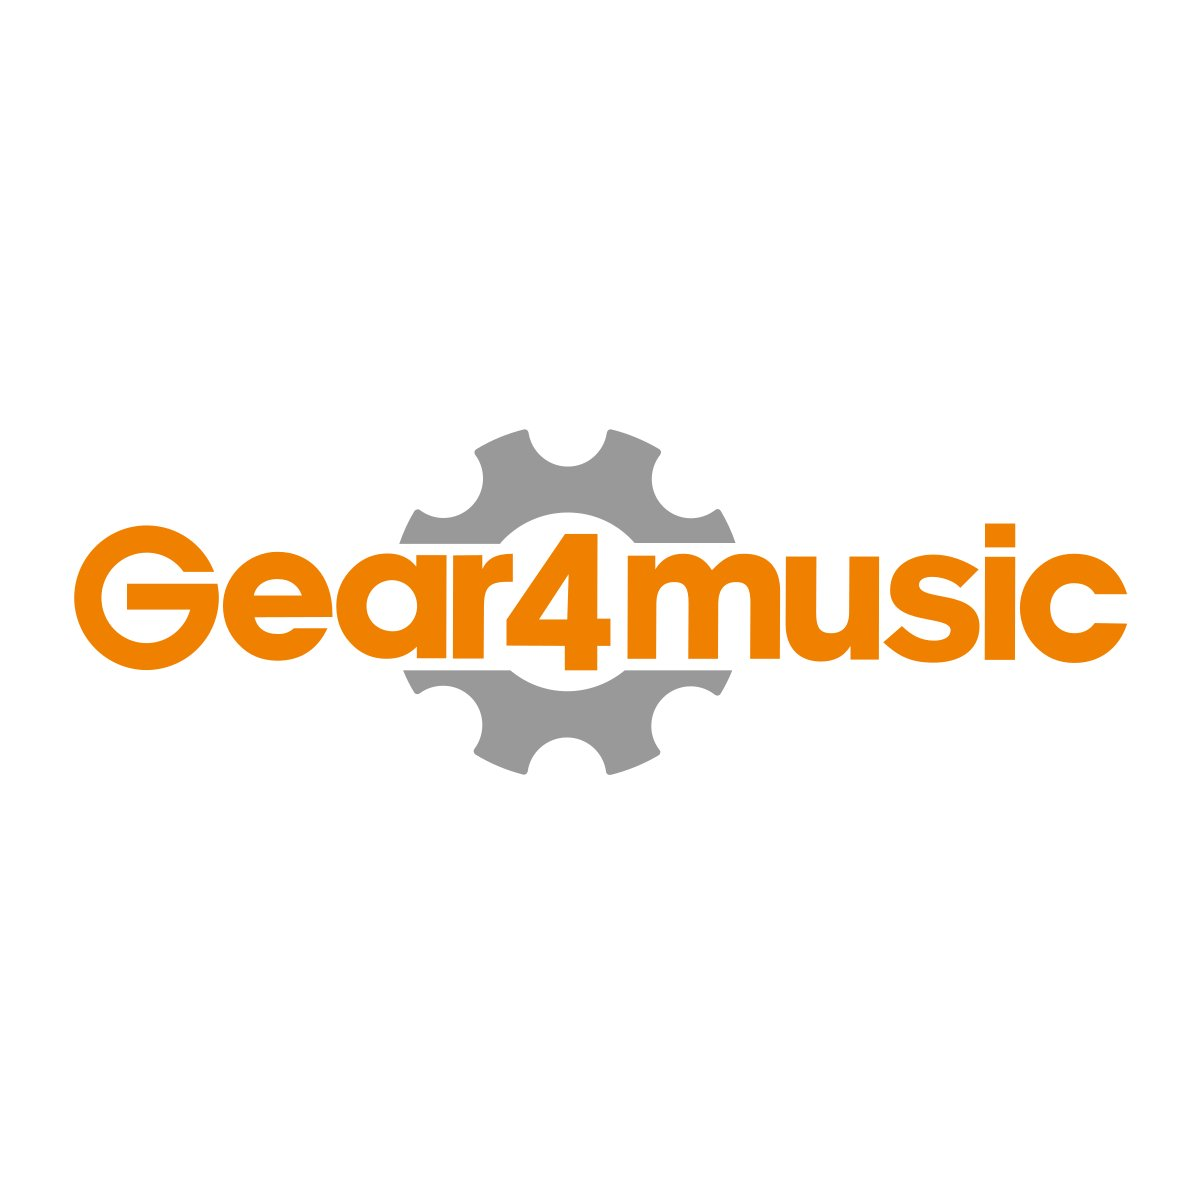 Elektrische Viool van Gear4music, Naturel